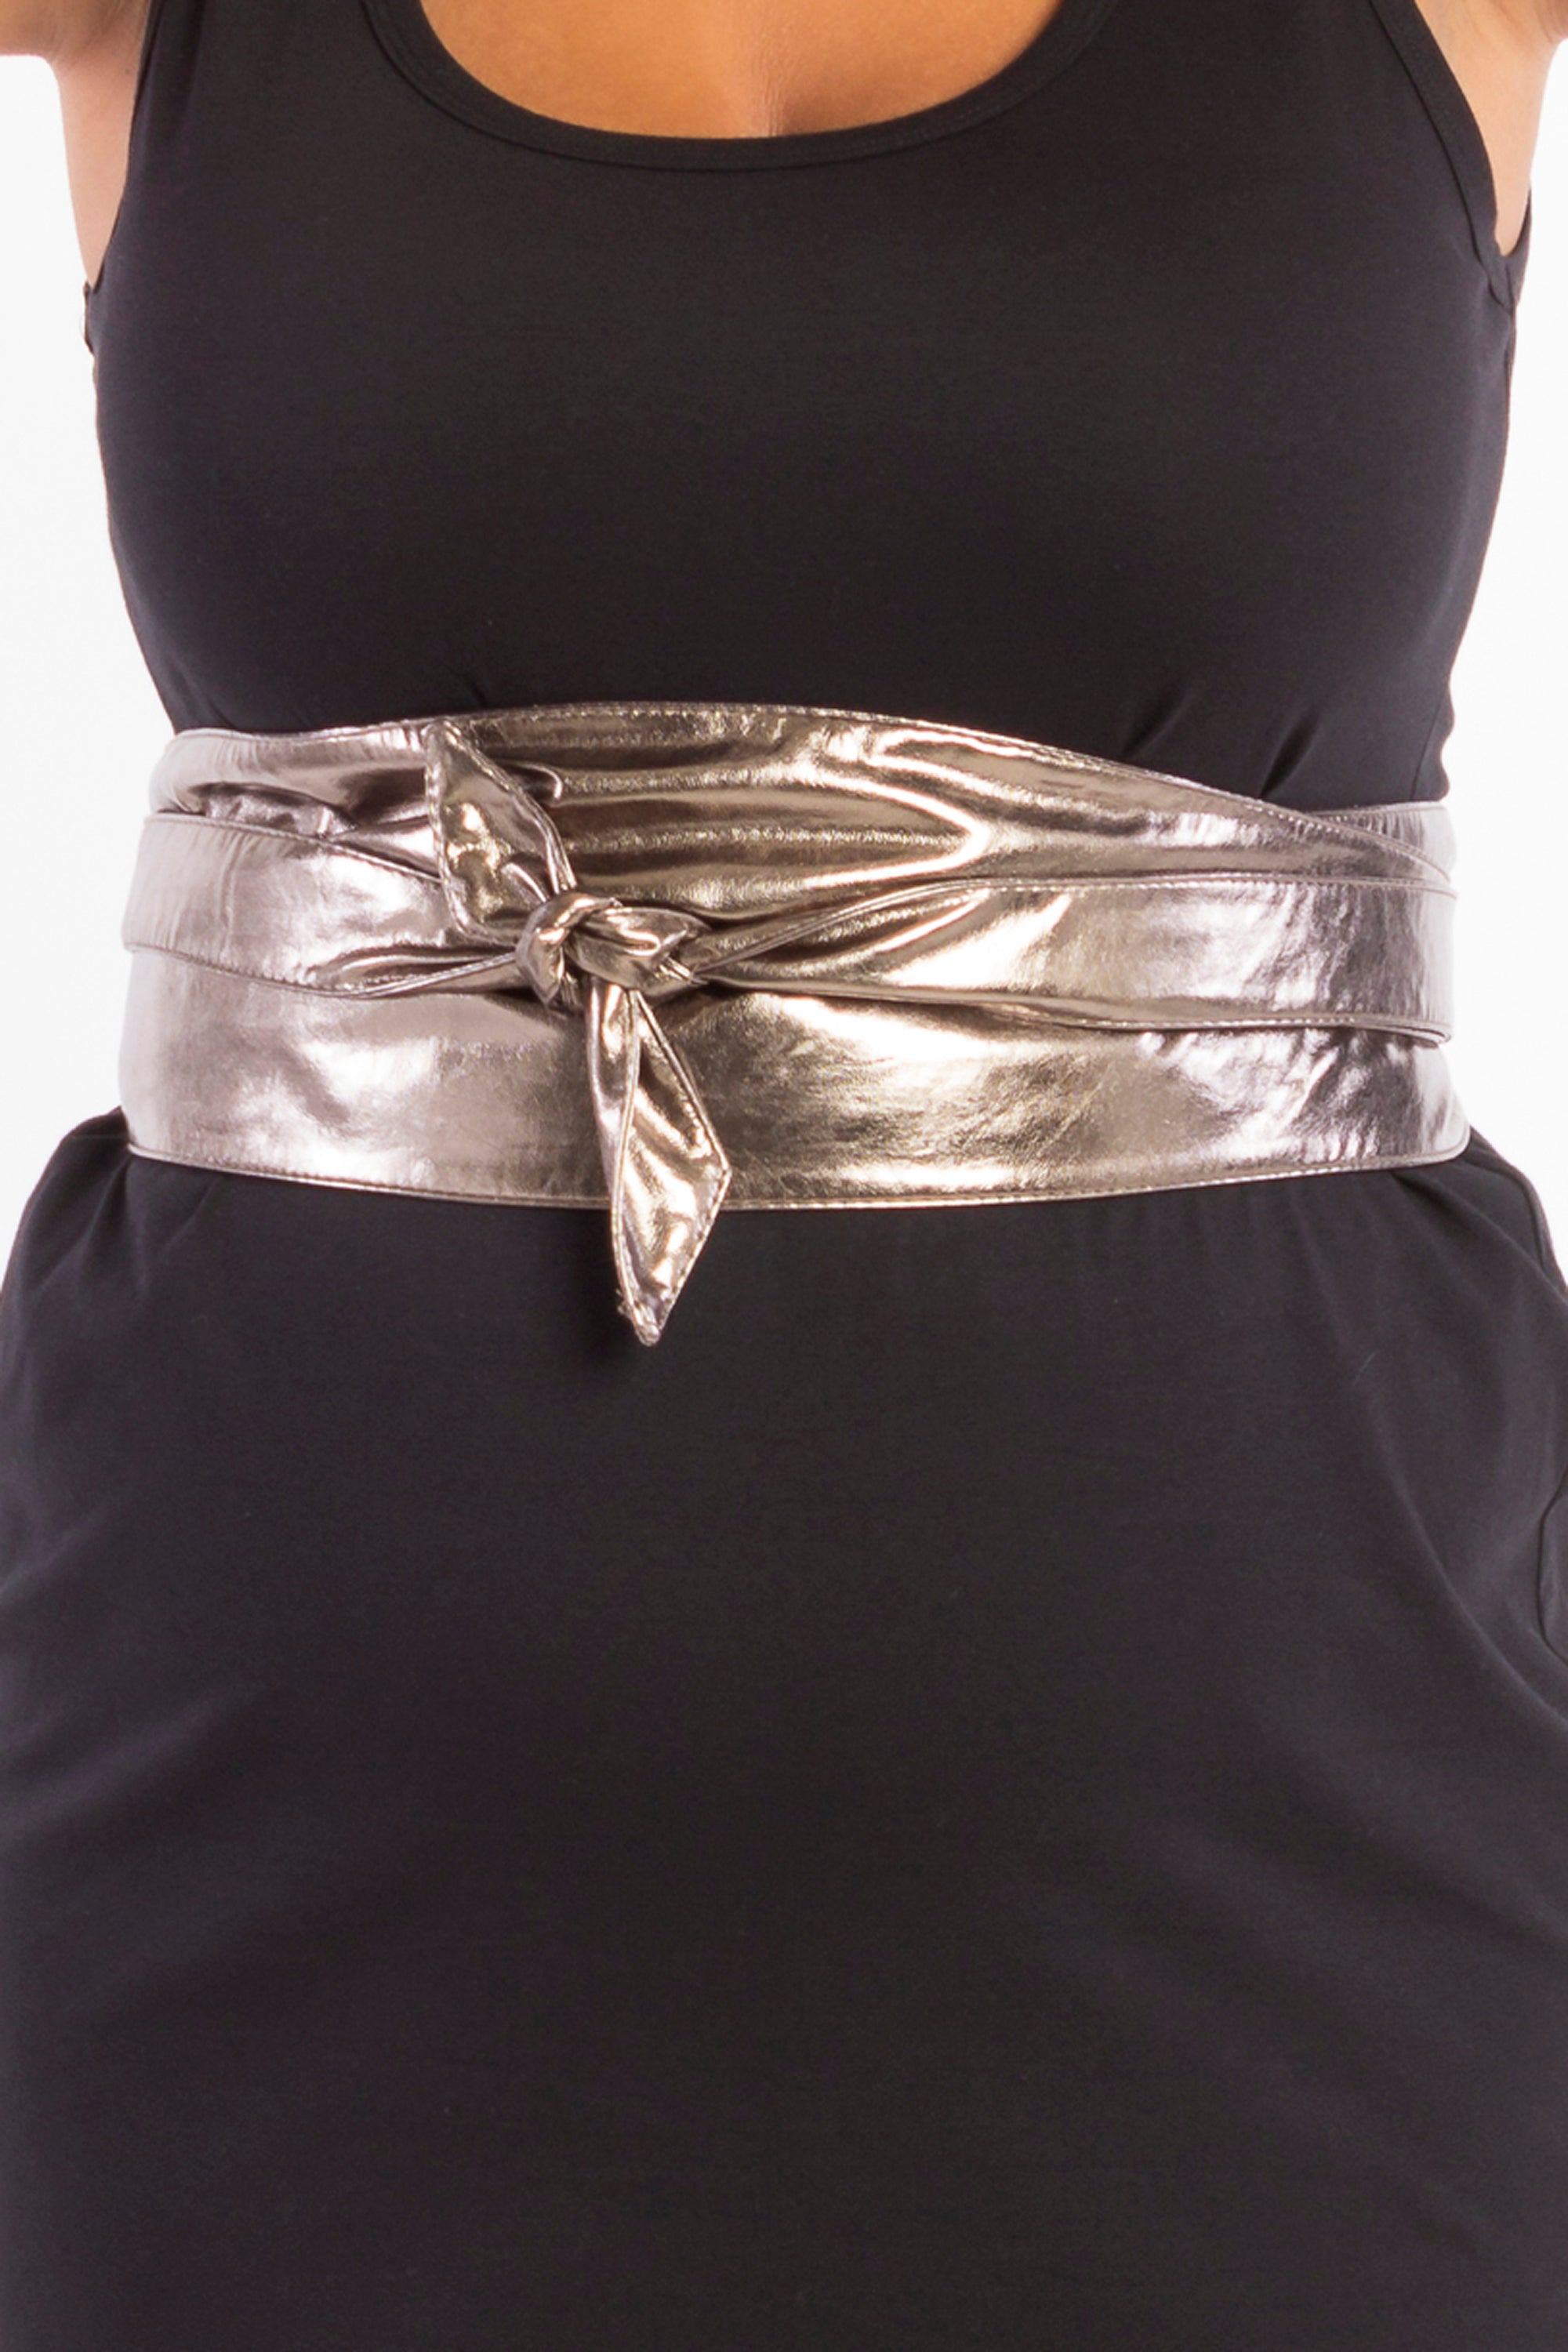 Wrap It Up Obi Belt - Bronze Vegan Leather - Harlow